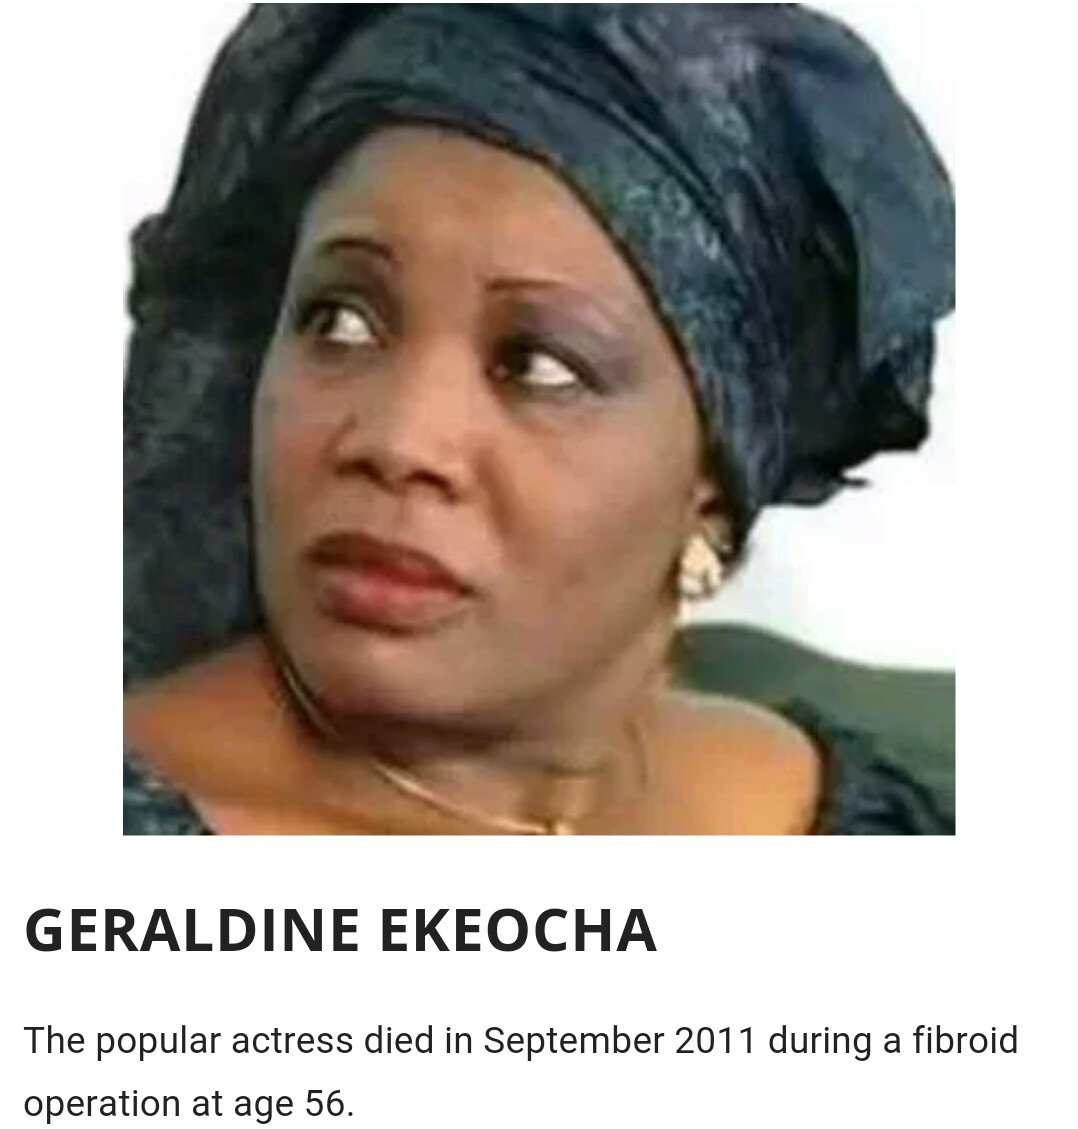 Pictures of geraldine ekeocha